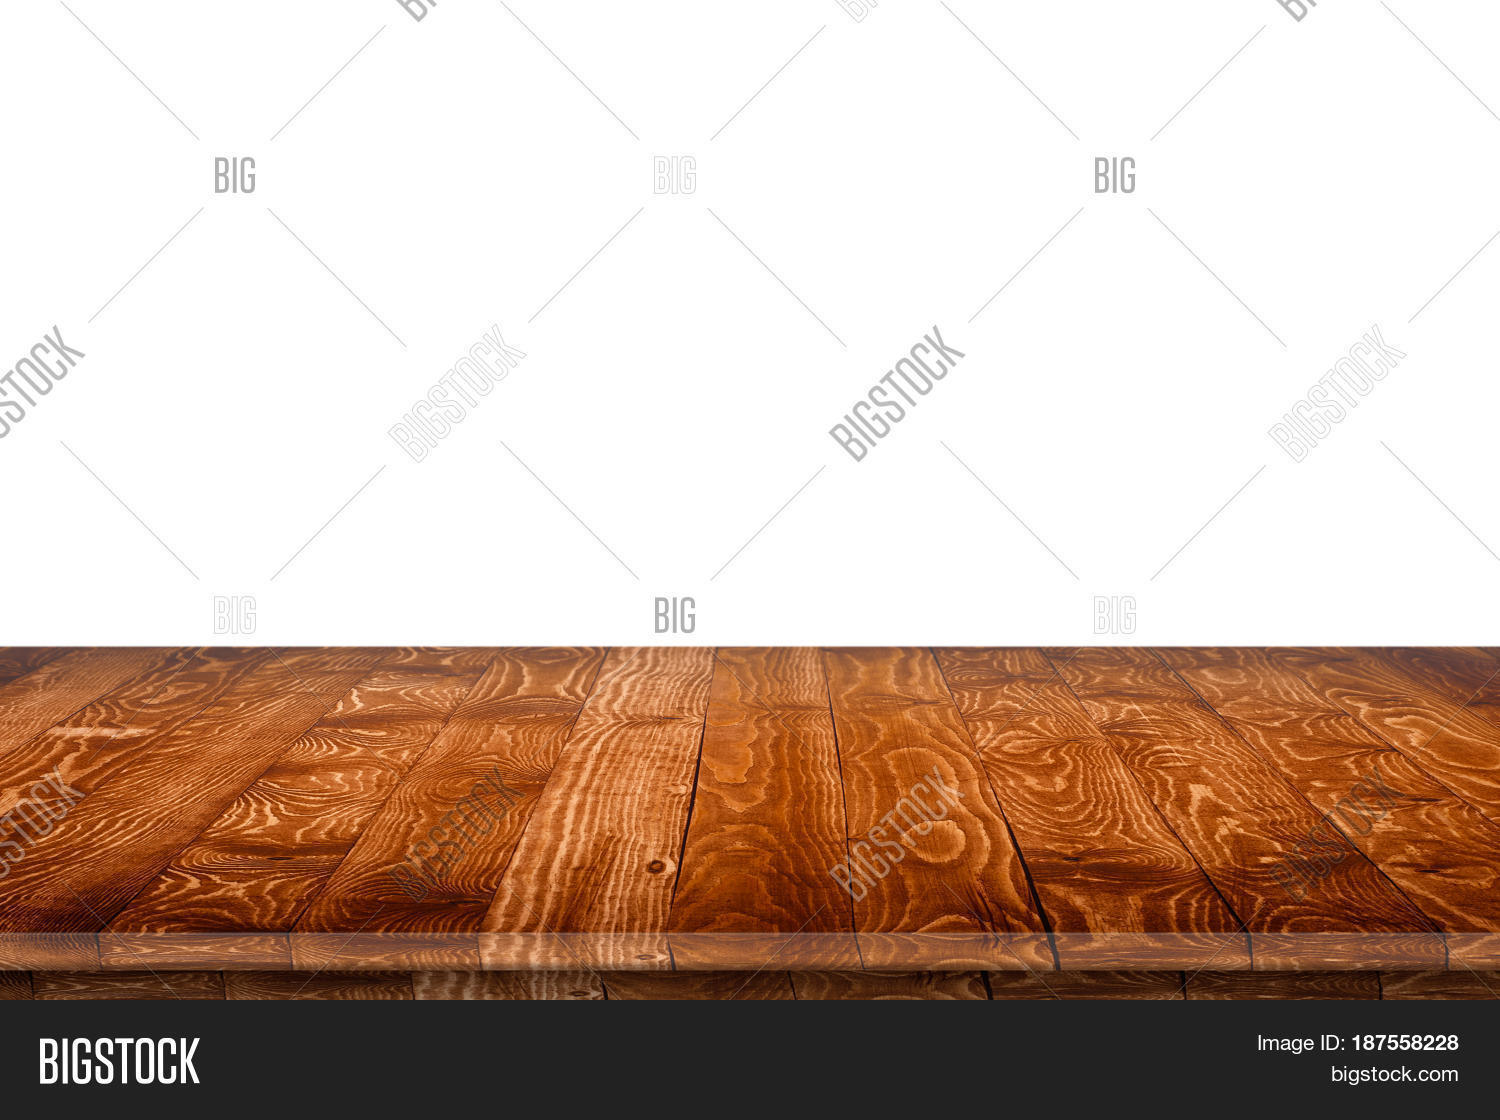 Rustic Wooden Table Perspective Image Photo Bigstock